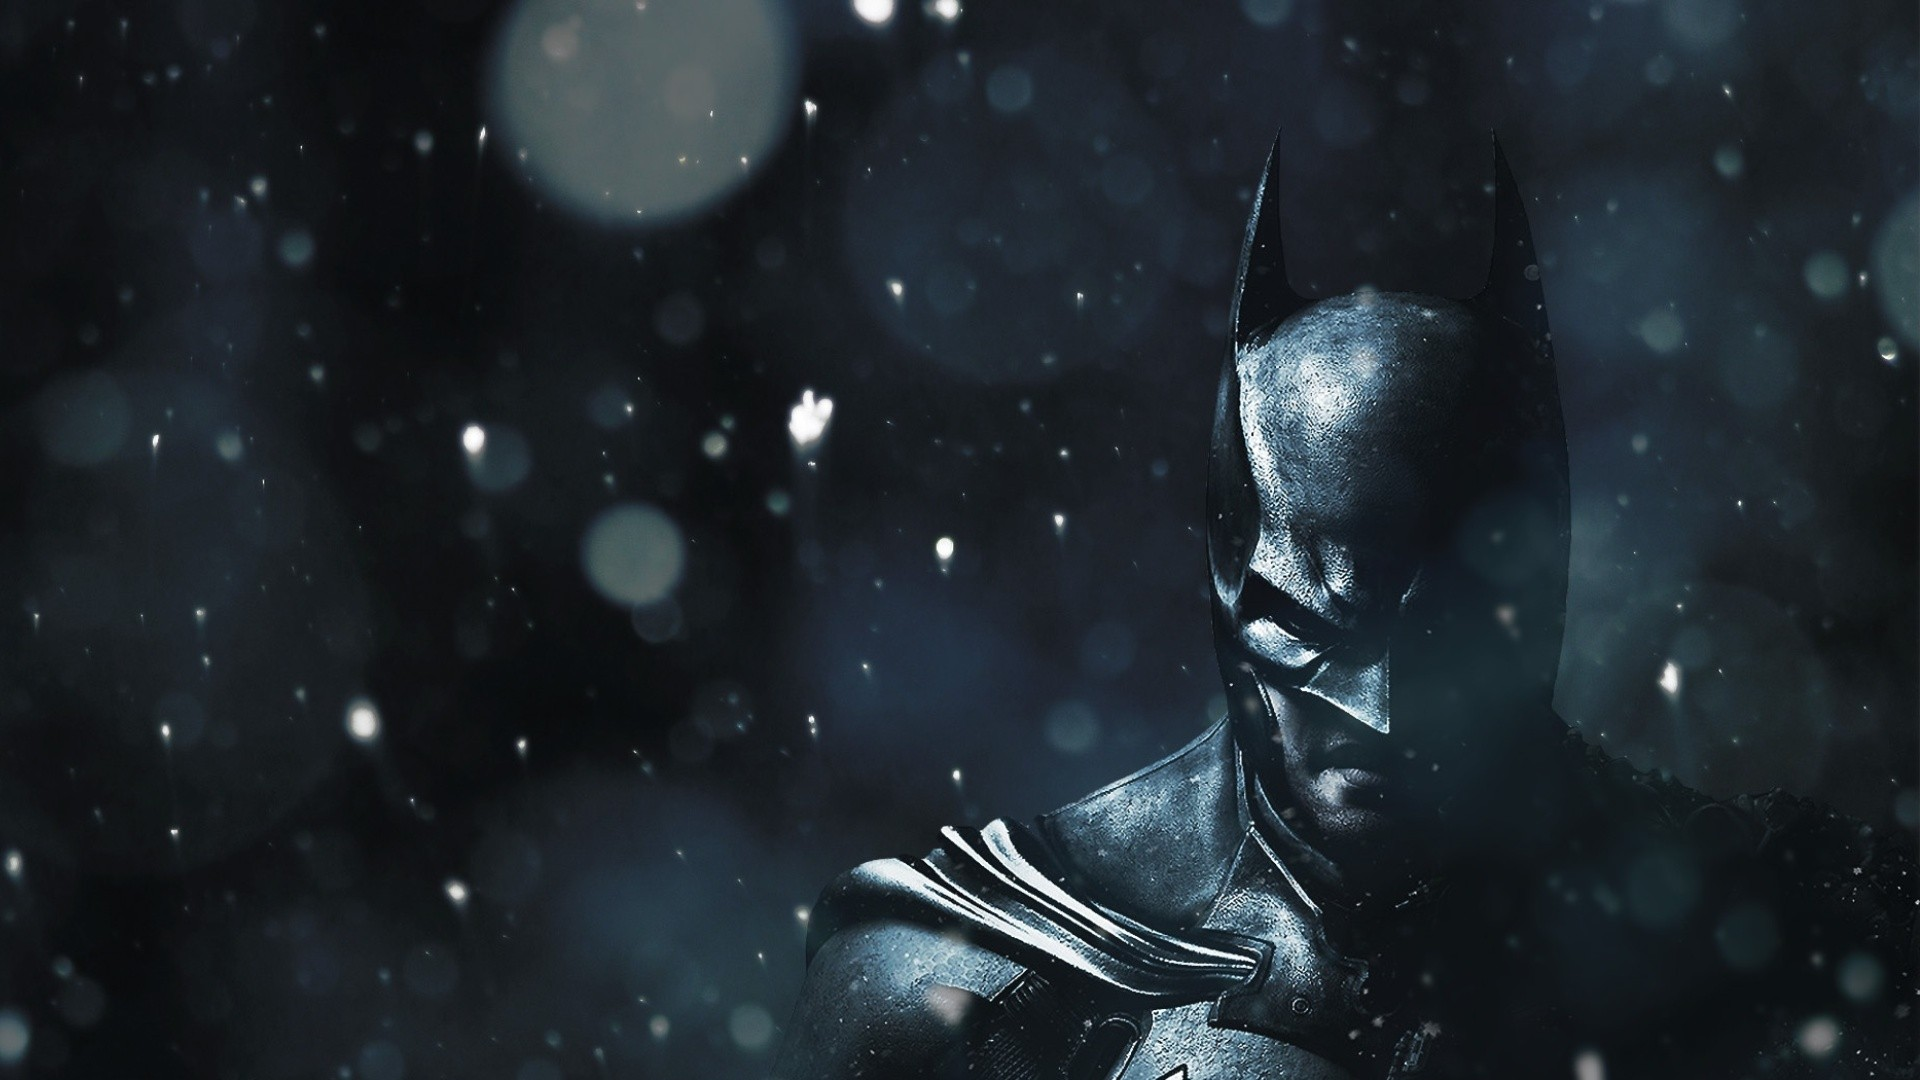 50 Batman Logo wallpapers For Download HD 1080p 1920x1080